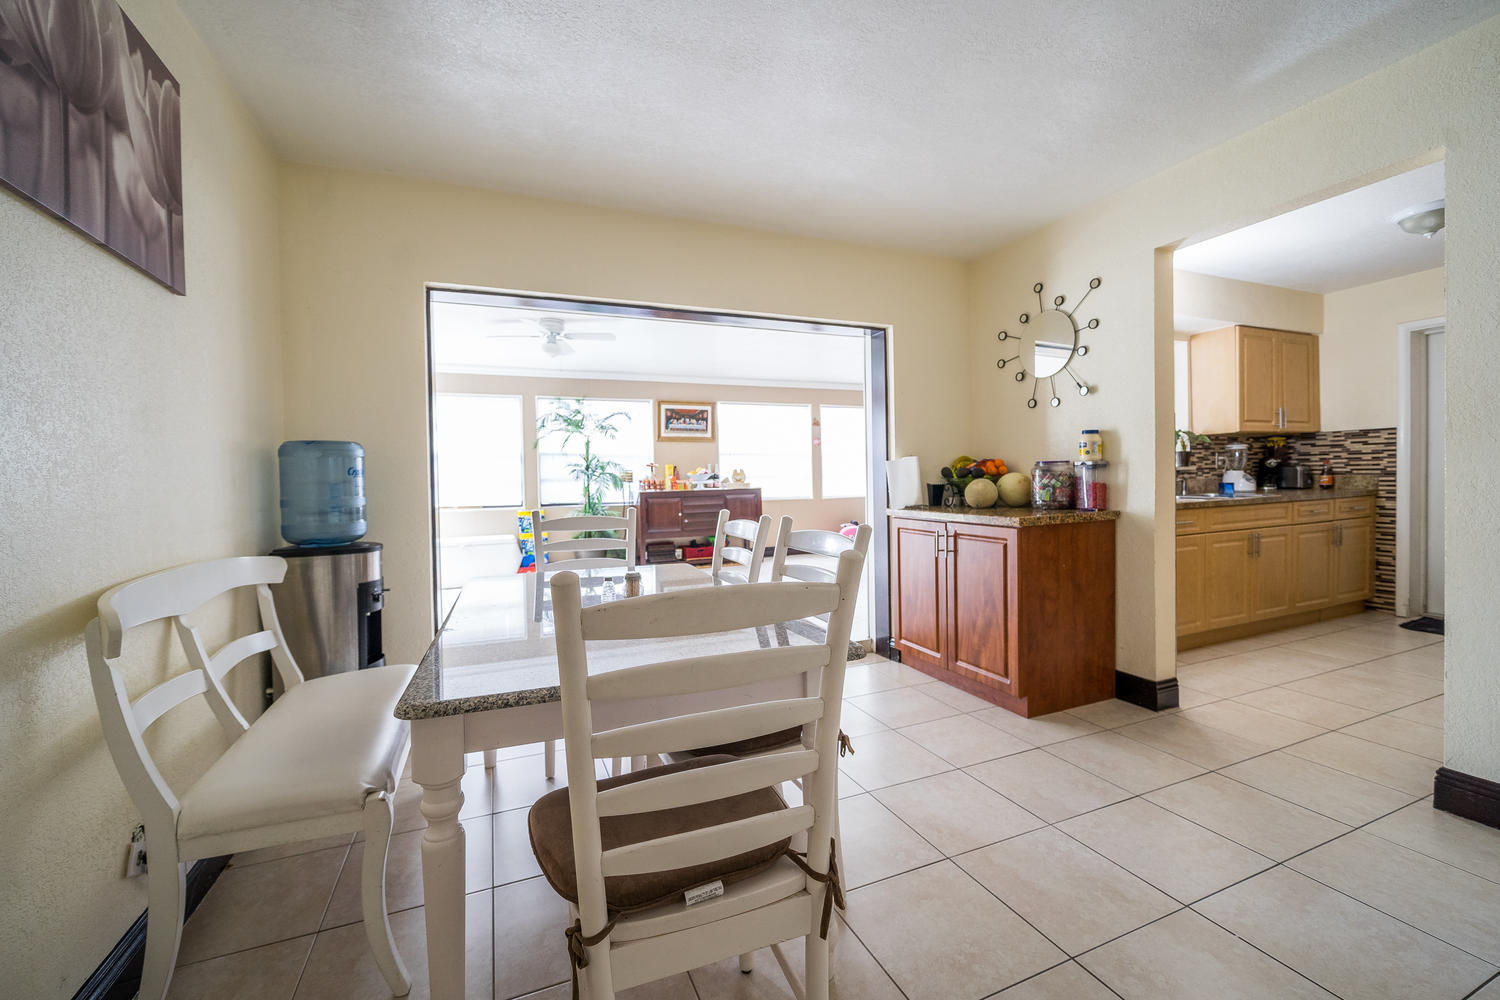 913 Montego Drive West Palm Beach, FL 33415 small photo 4